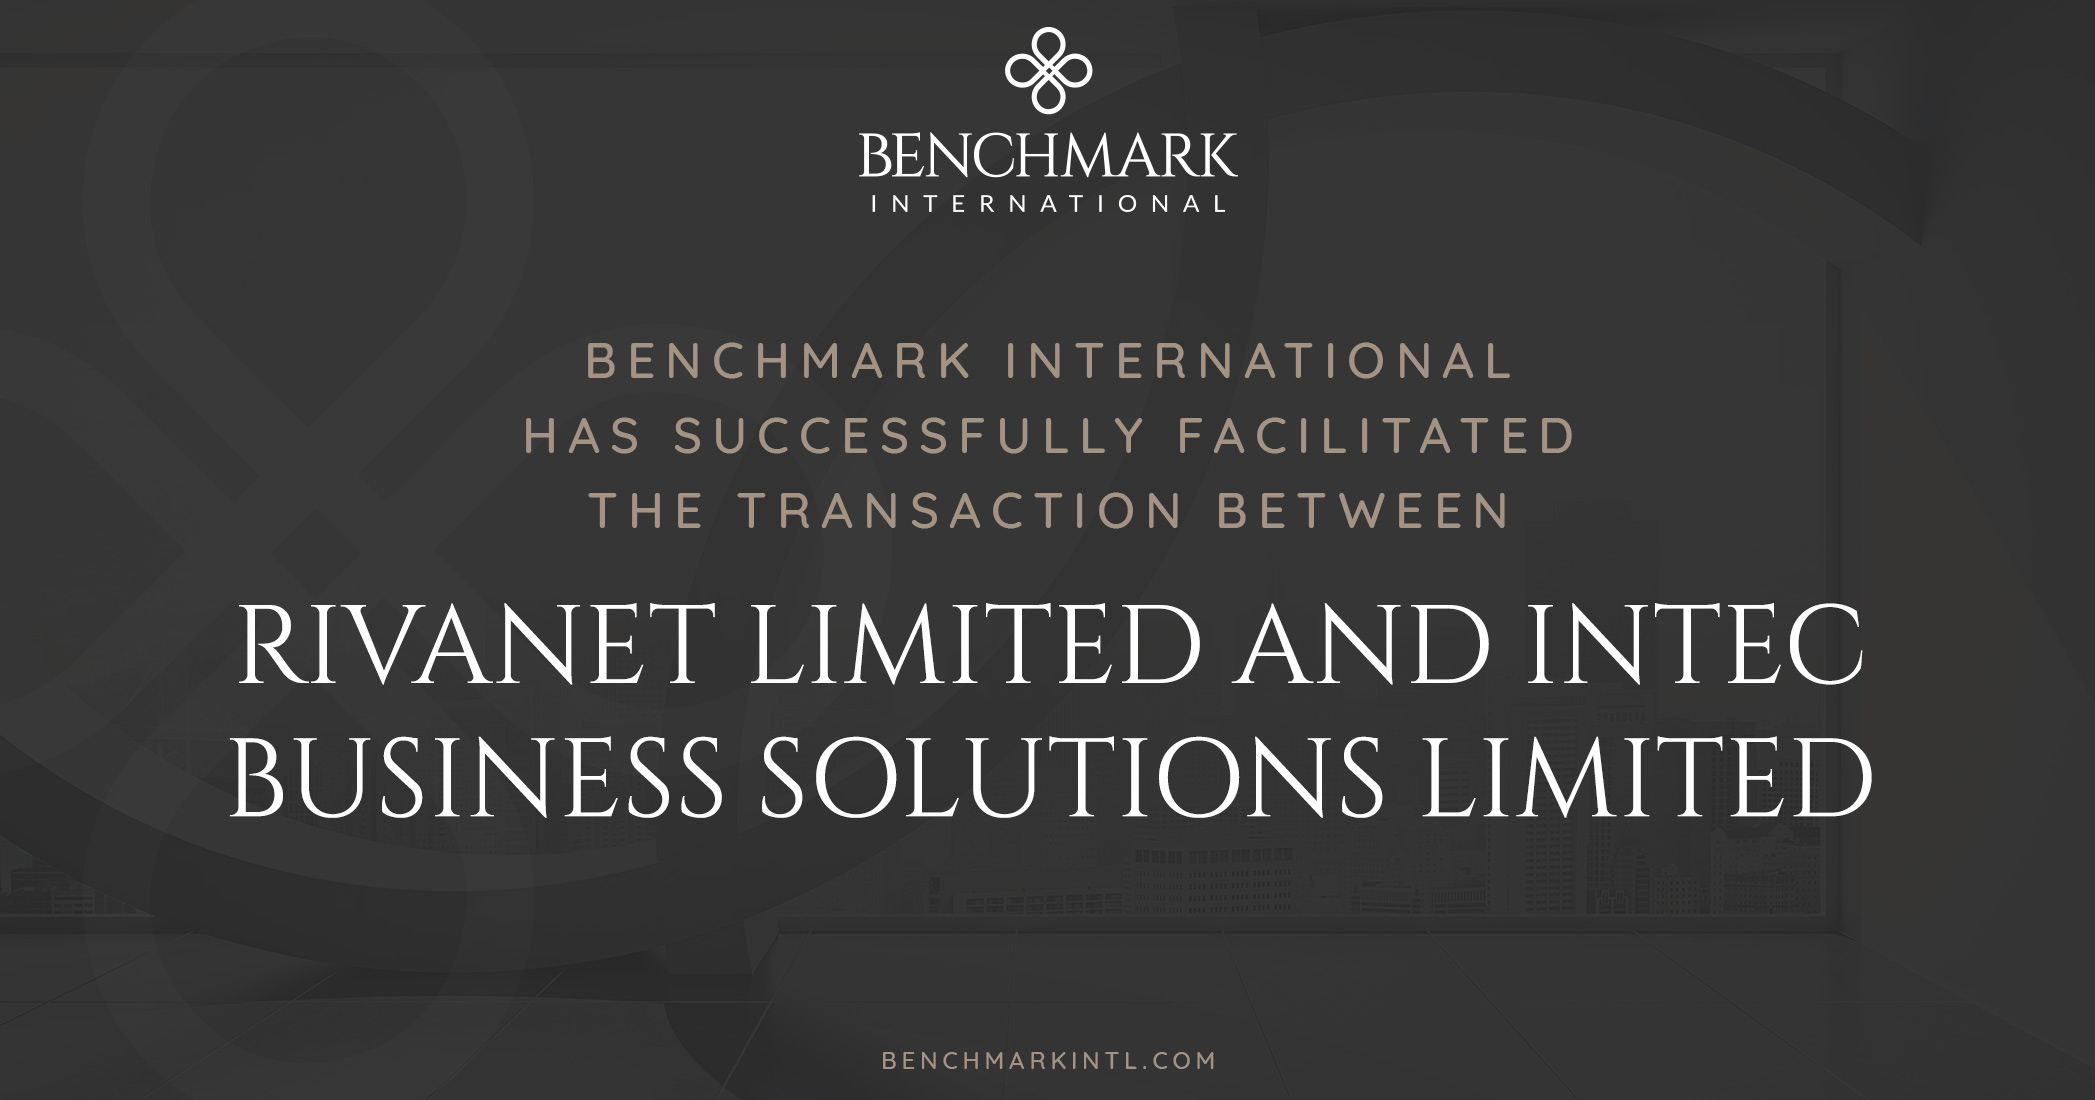 Benchmark International Successfully Facilitated the Transaction Between Rivanet Limited and Intec Business Solutions Limited